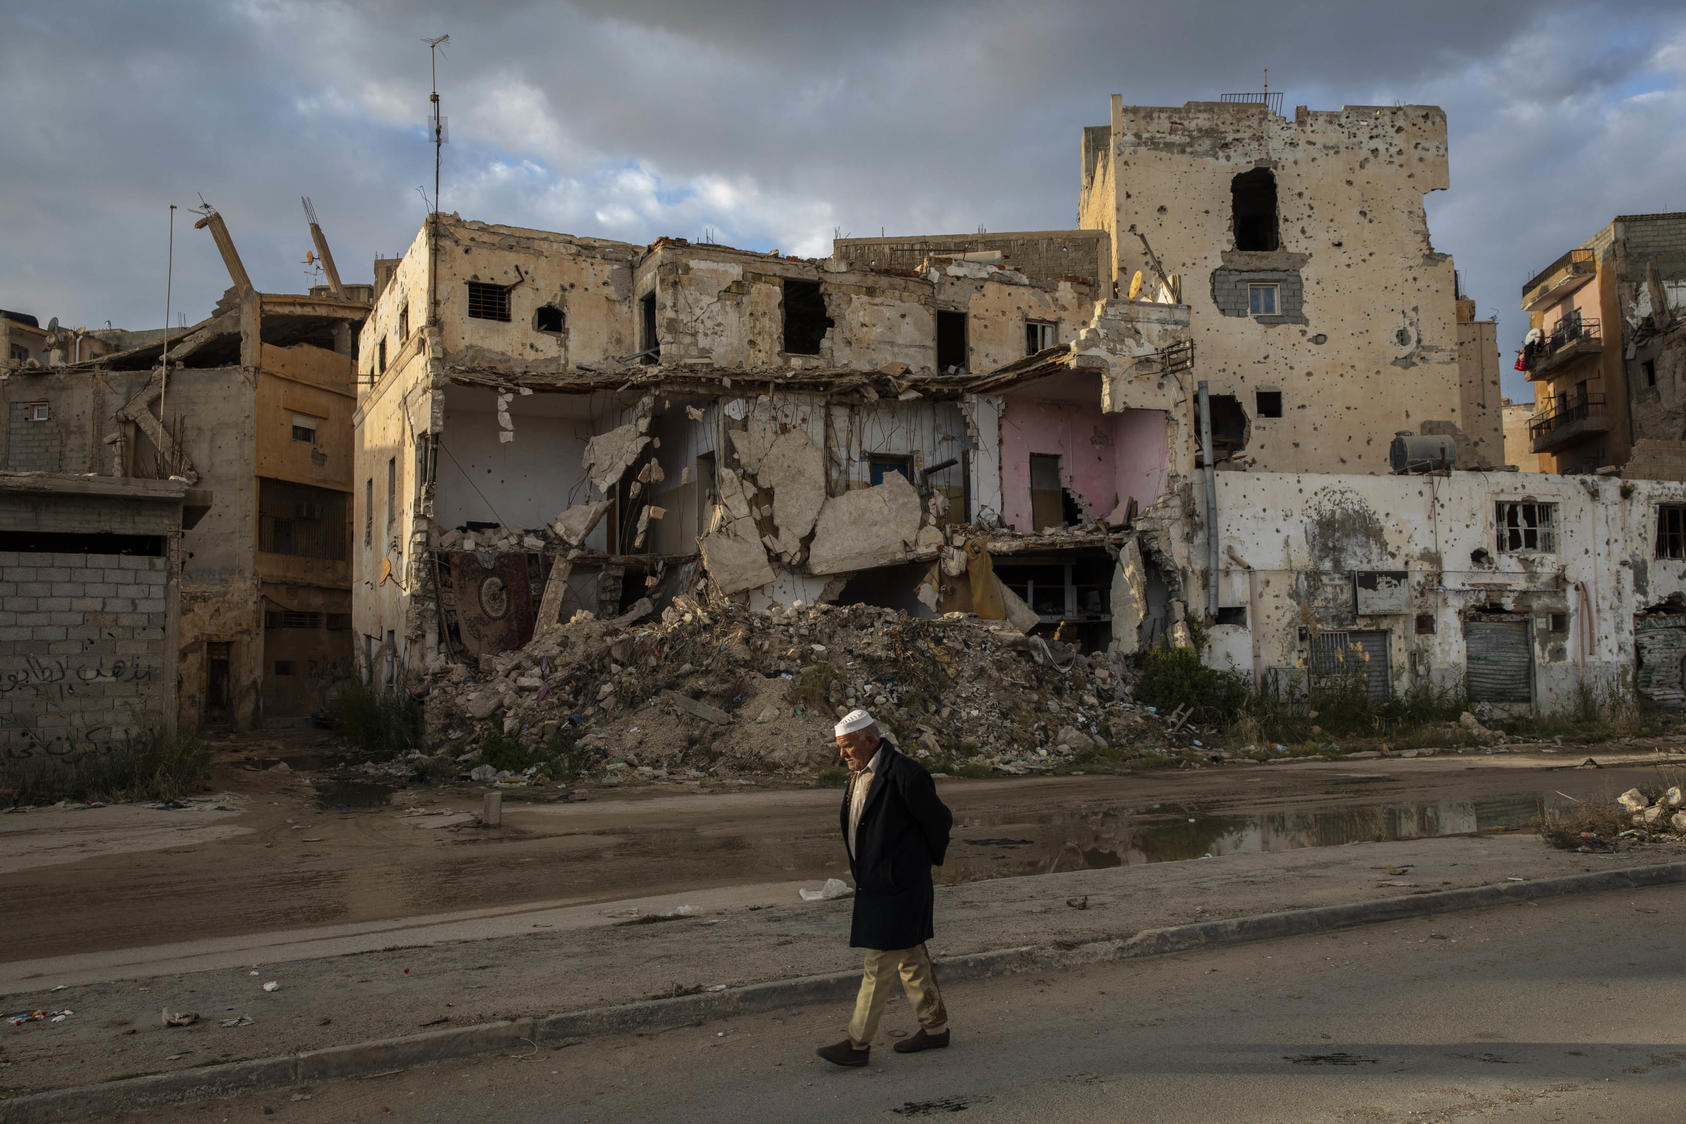 Buildings in ruins in the historic center of Benghazi, Libya, Jan 20, 2020, after years of conflict to drive out the Islamic State group and fighting between warring factions. (Ivor Prickett/The New York Times)